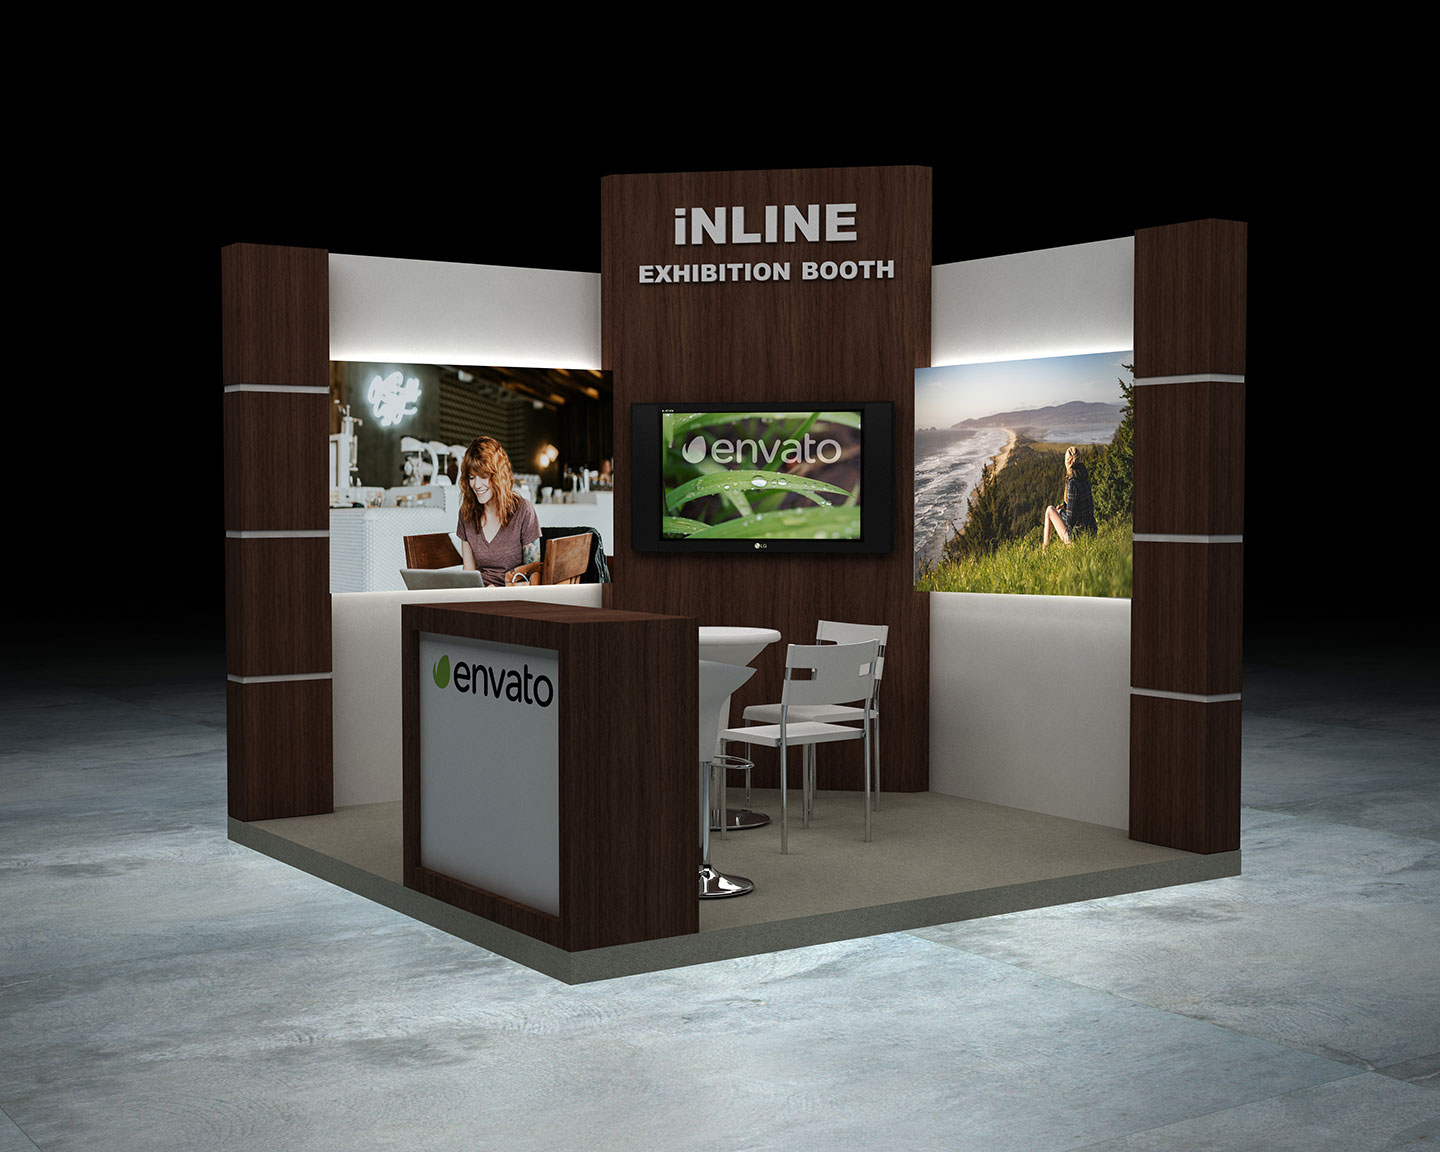 Property Exhibition Booth : Exhibition booth inline by brakster docean